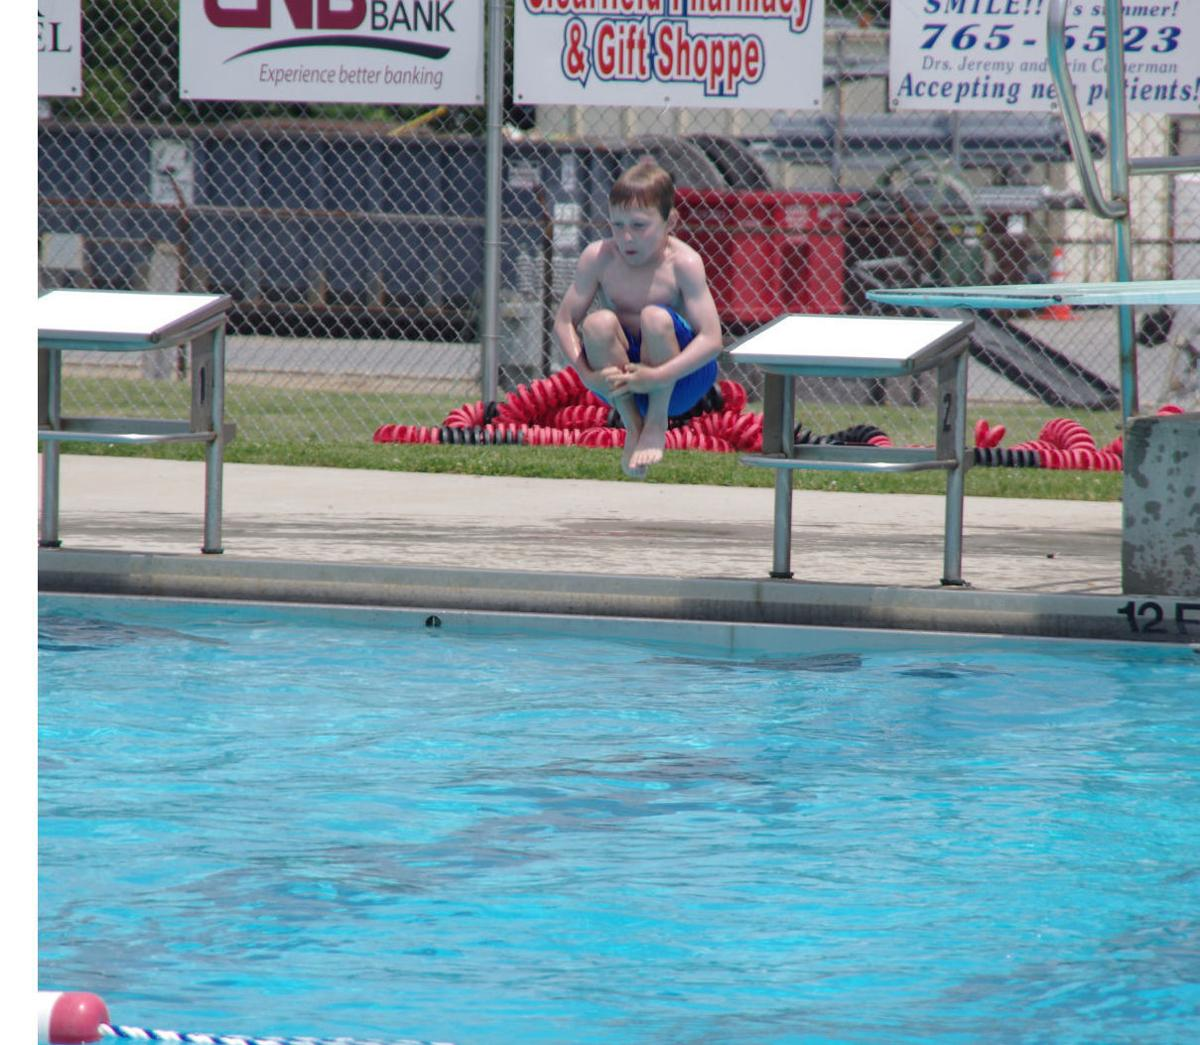 Pool Splash Cannonball In Cannonball Coming Clearfield Pool Will Open June News Theprogressnewscom